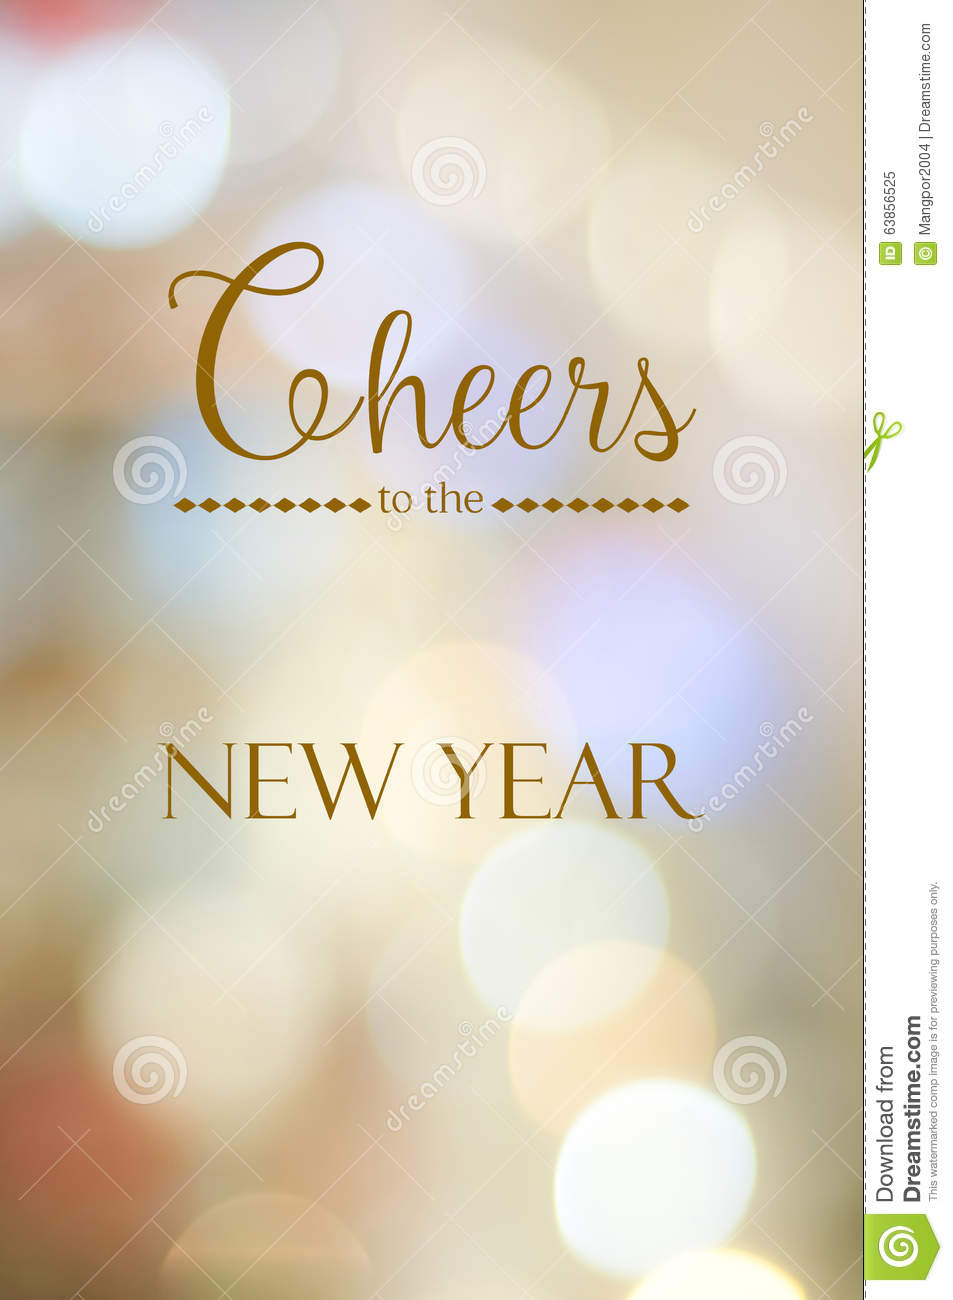 Cheers To The New Year On Abstract Blur Bokeh Background Stock Photo ...